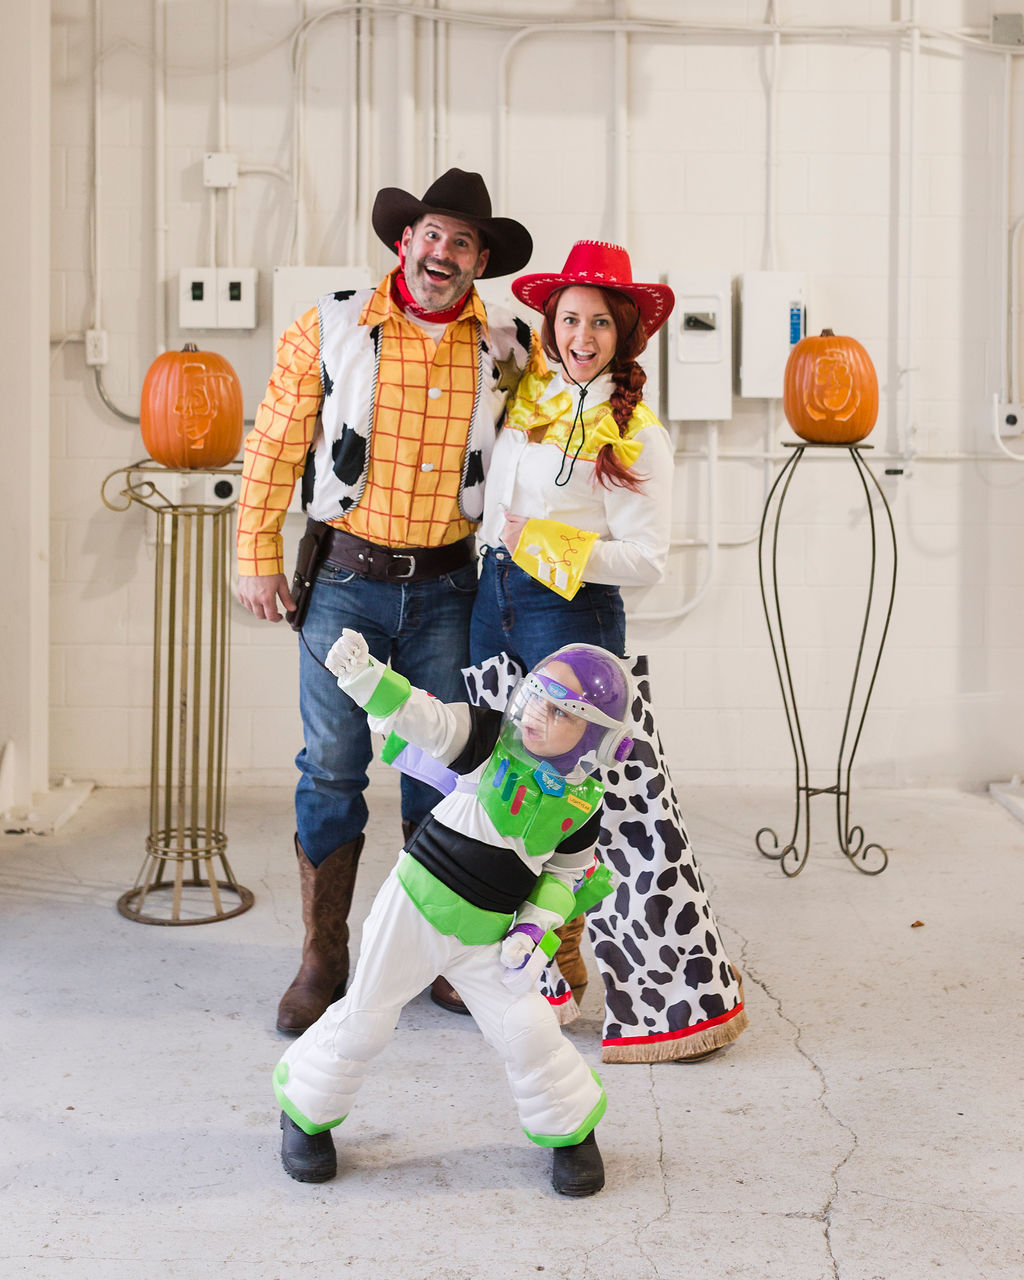 toy story halloween costumes-3